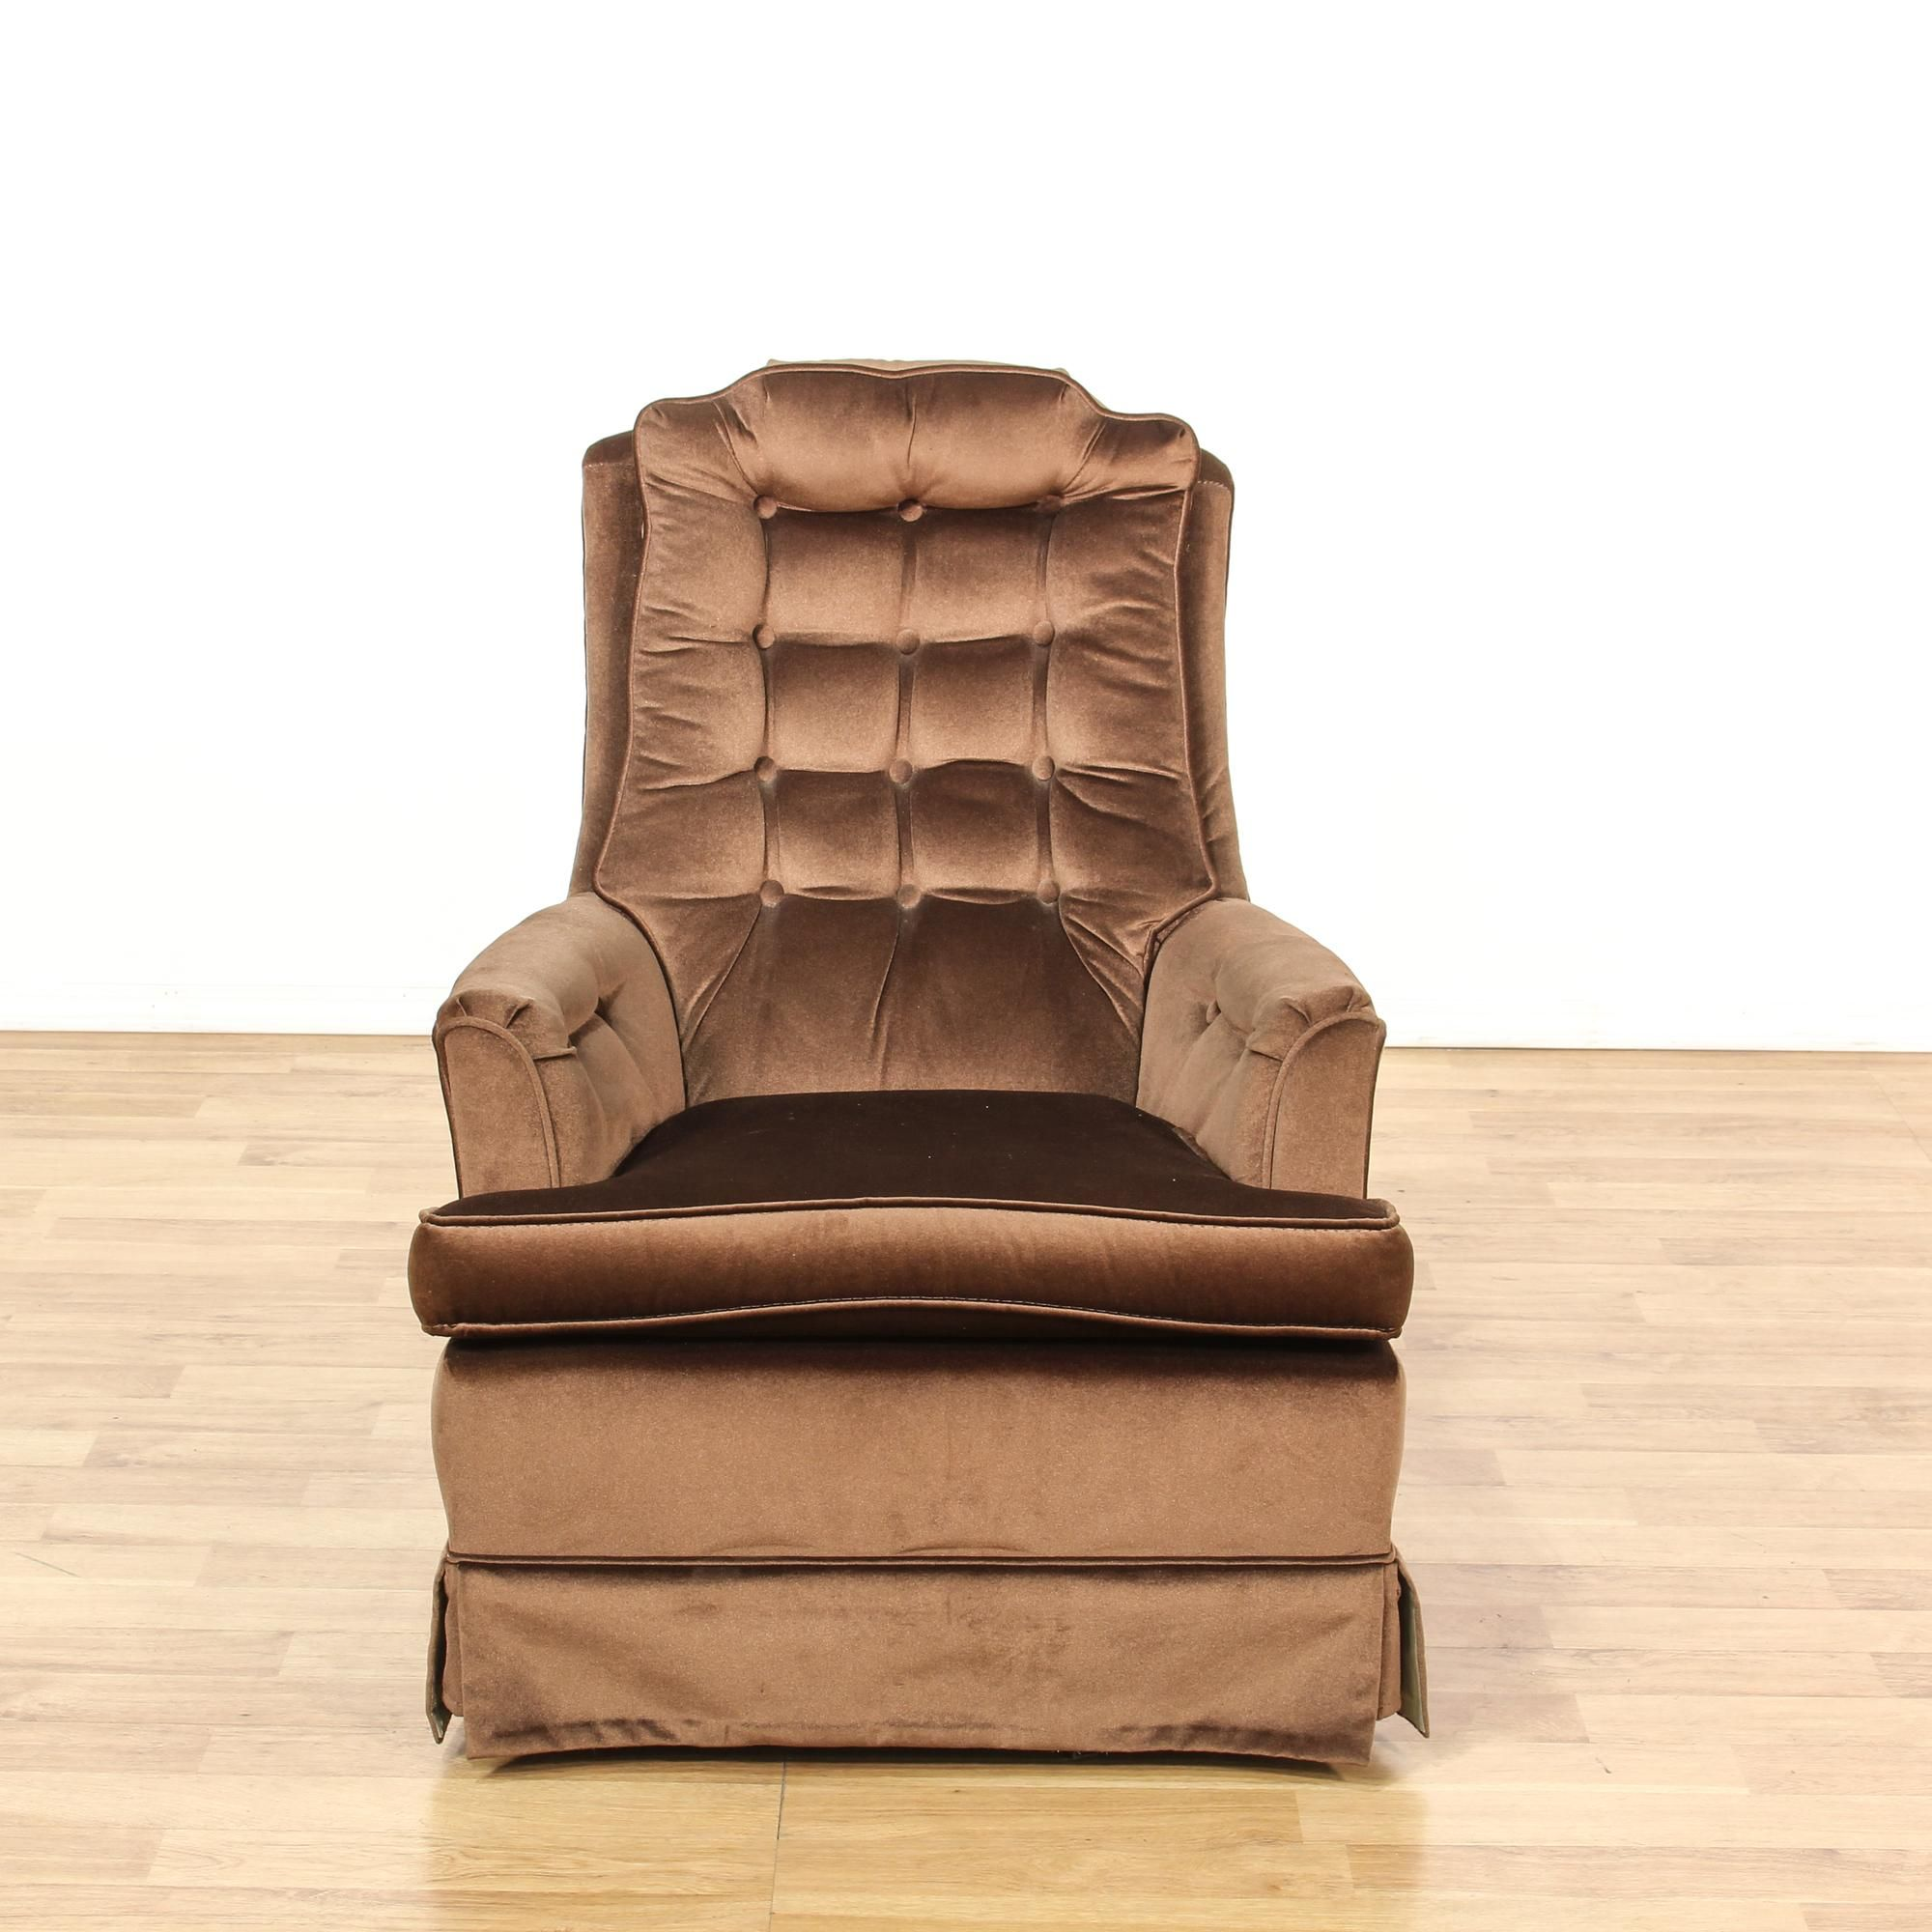 This armchair is upholstered in a durable velour with a chocolate